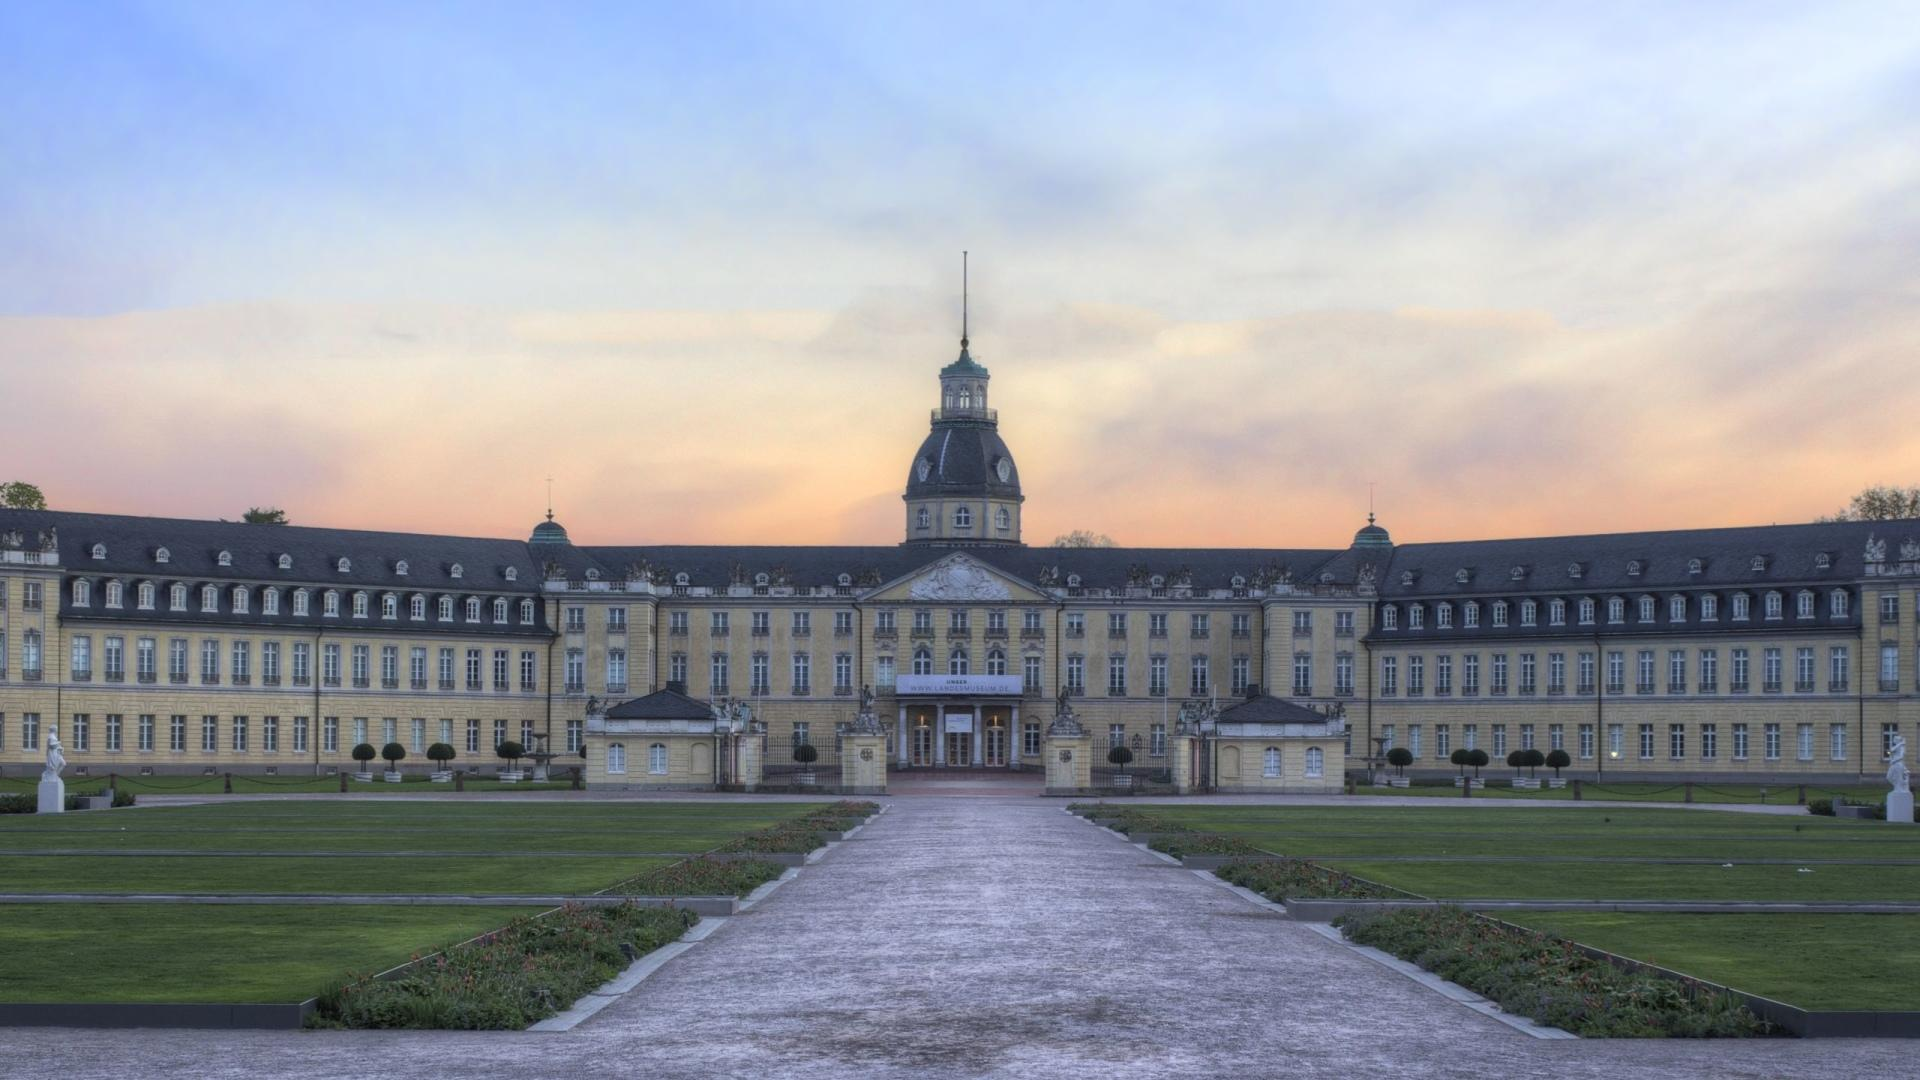 Karlsruhe Palace wallpapers HD quality